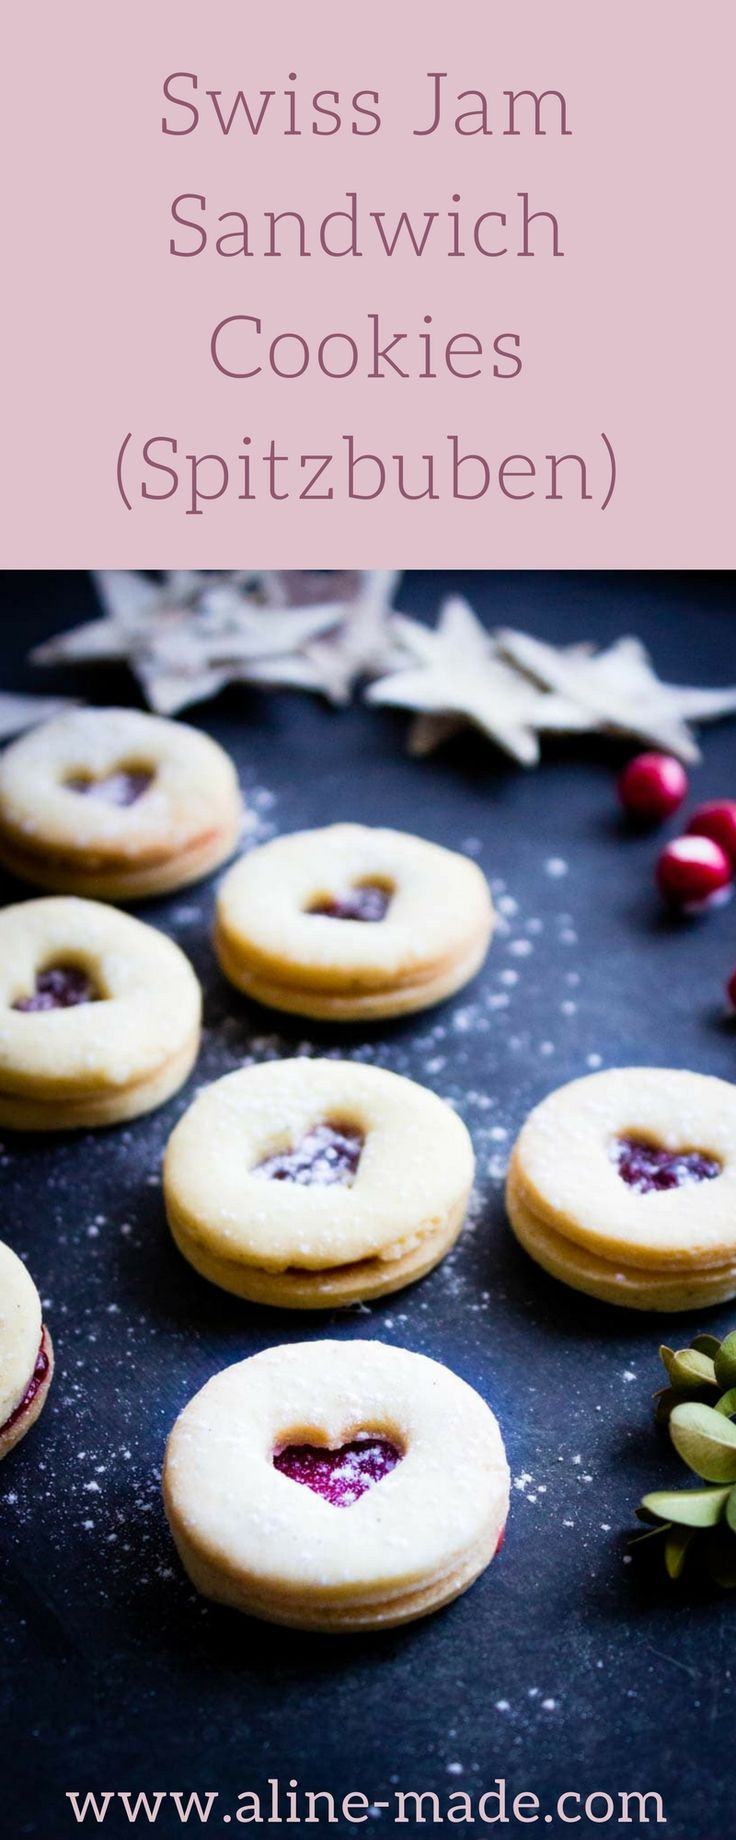 Swiss Jam Sandwich Cookies (Spitzbuben) - Typically Swiss Christmas butter cookies filled with red currant jam!